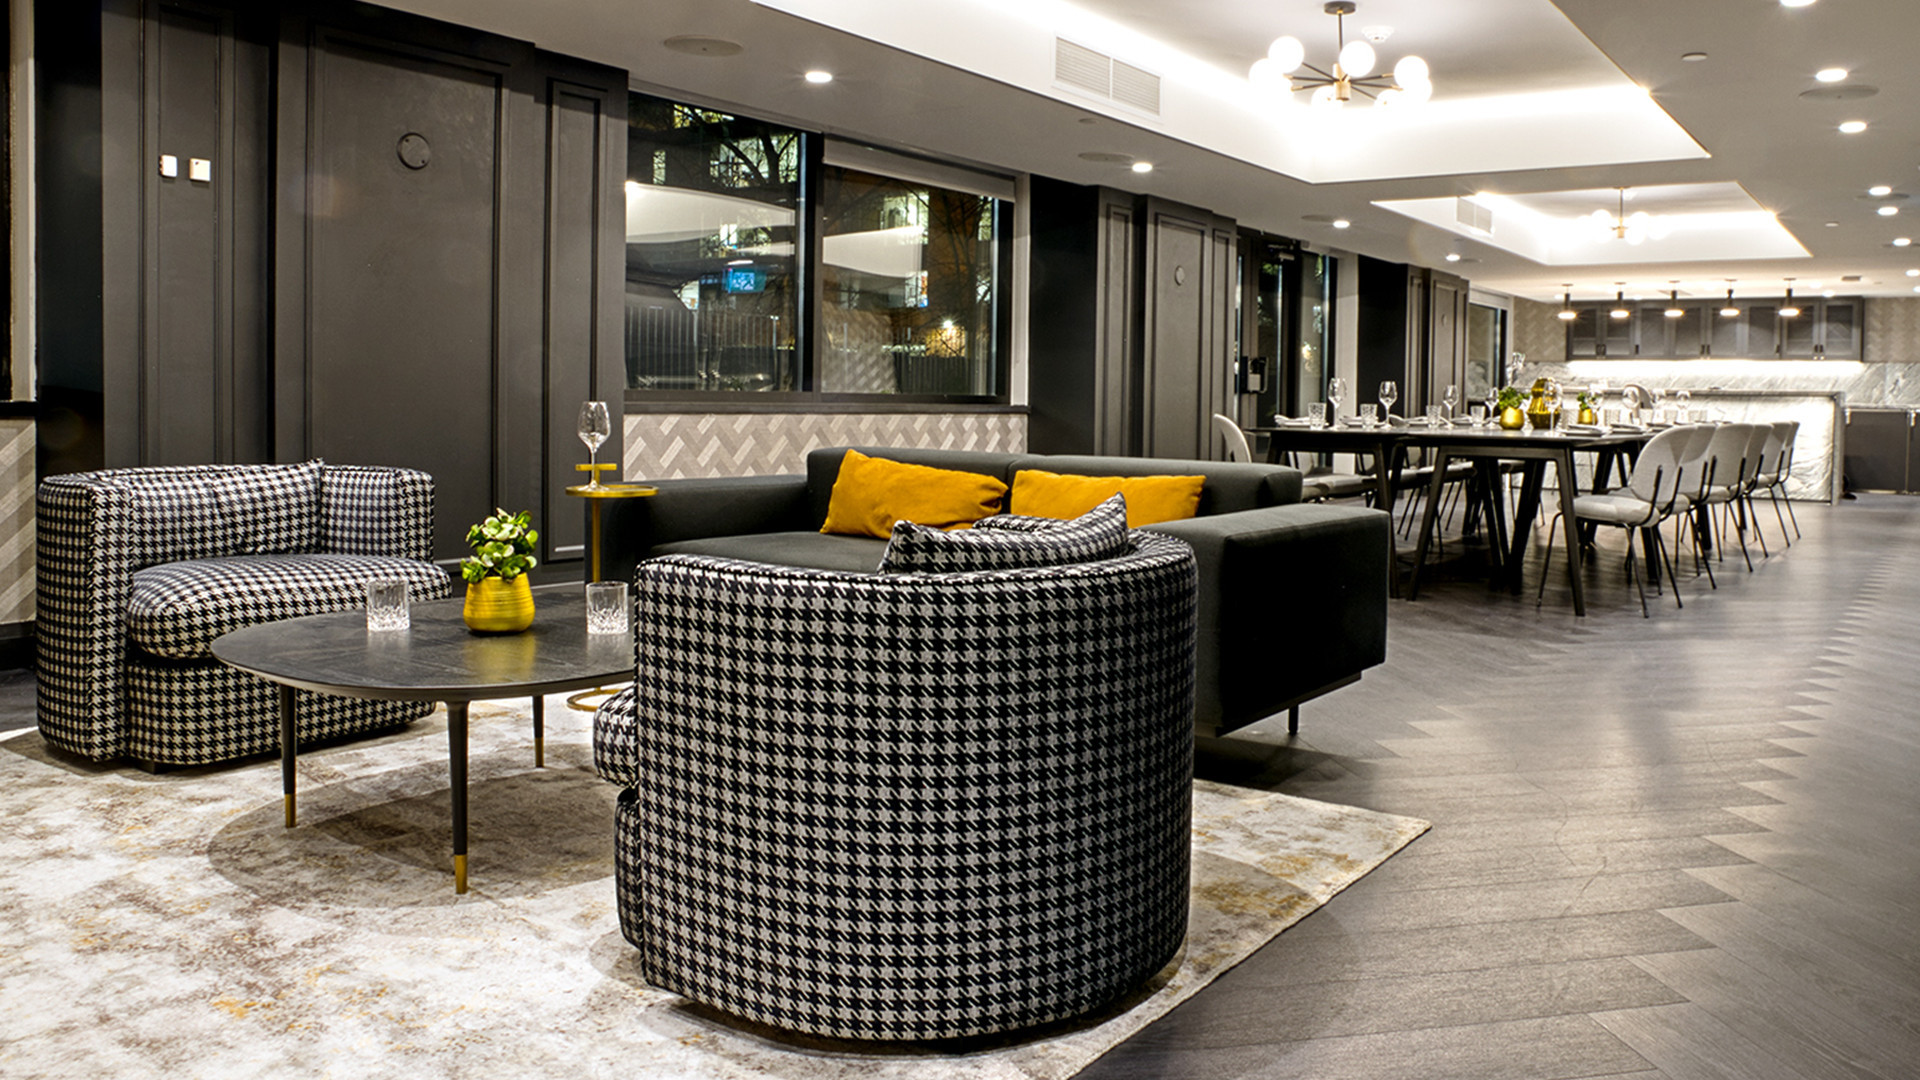 Best hotels Toronto staycation | The Anndore House lounge